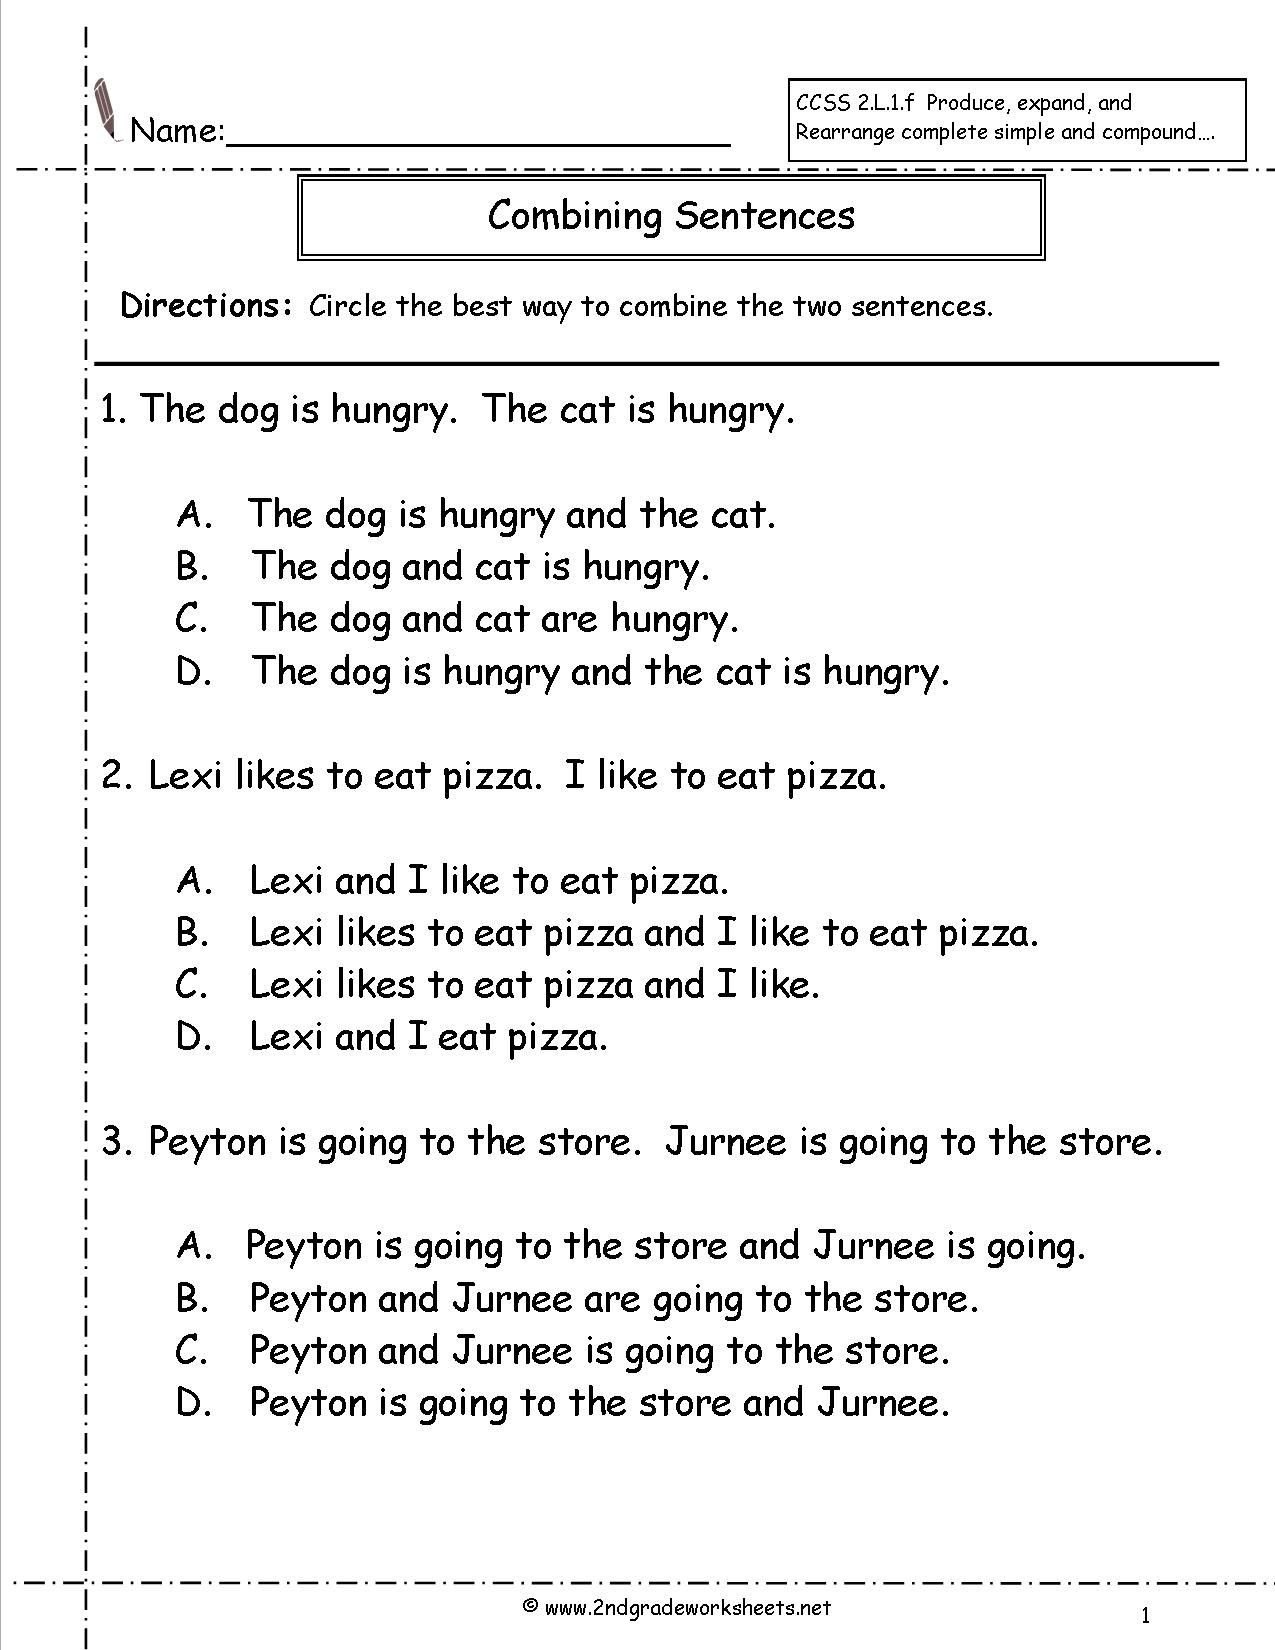 Combining Sentences Worksheet 3rd Grade Bining Sentences Worksheet